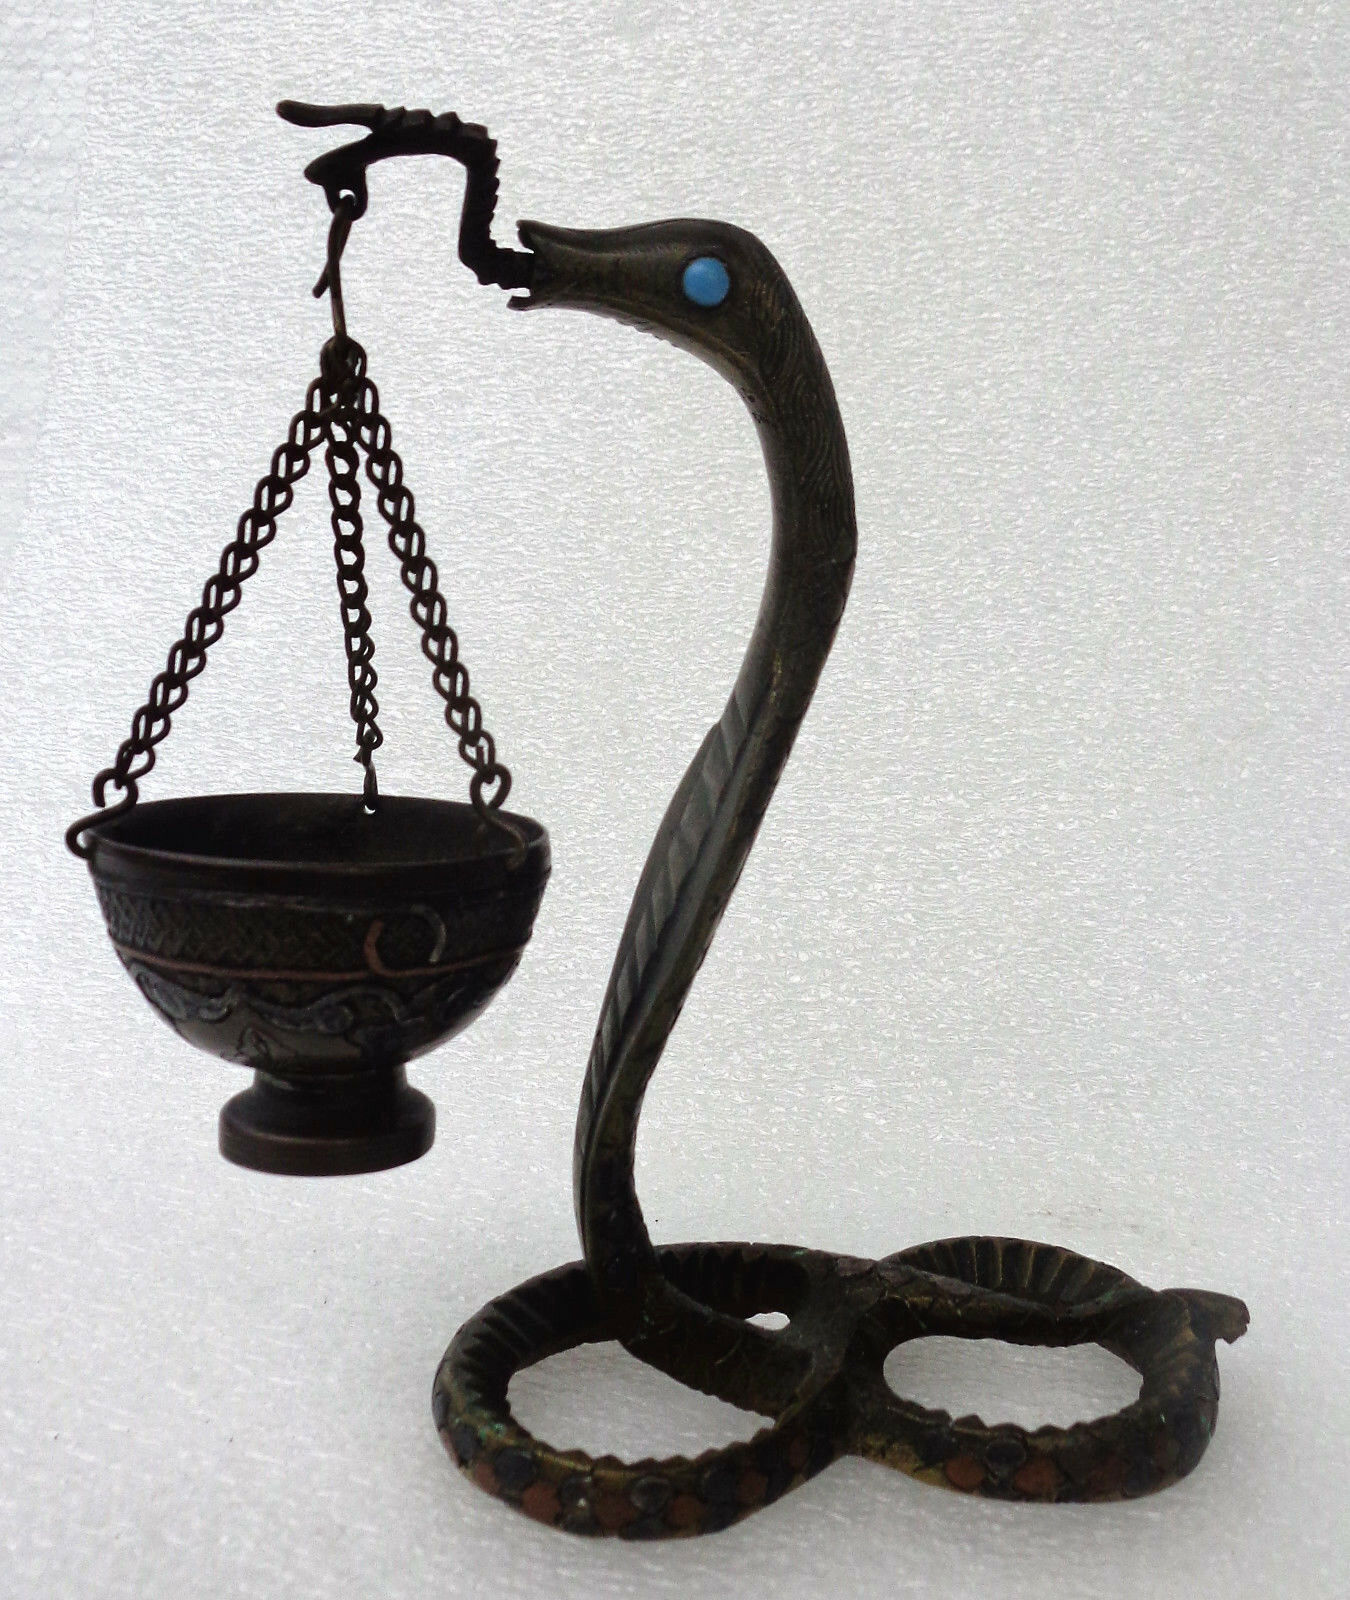 EGYPT: Apep - Very fine and old Egyptian bronze snake with bow - incense burner?